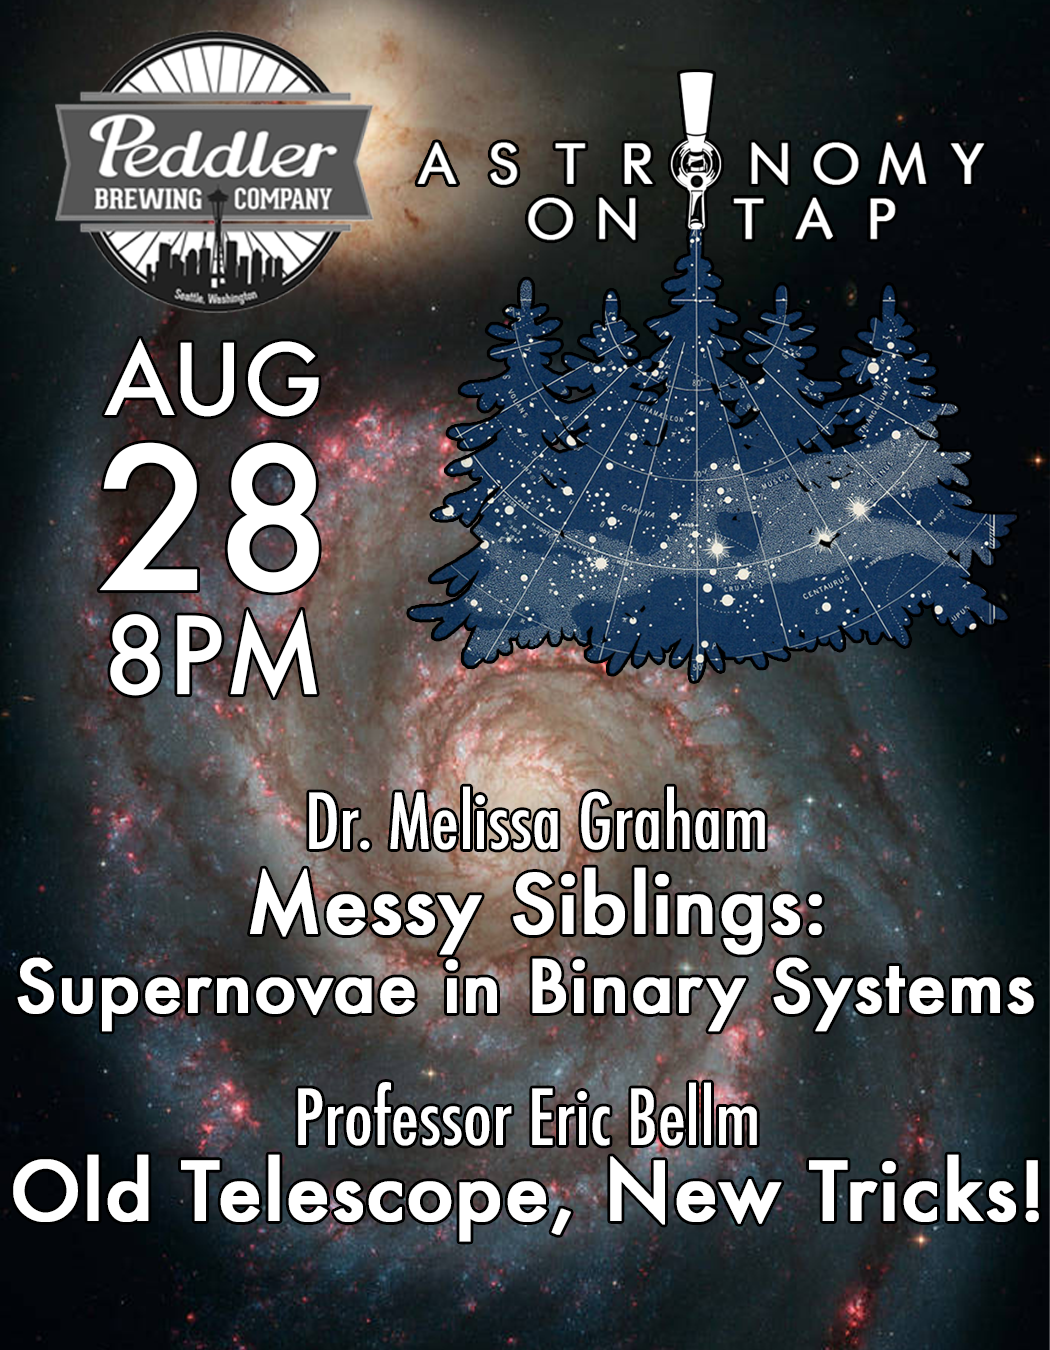 Astronomy on Tap SEA: August 28th at Peddler Brewing